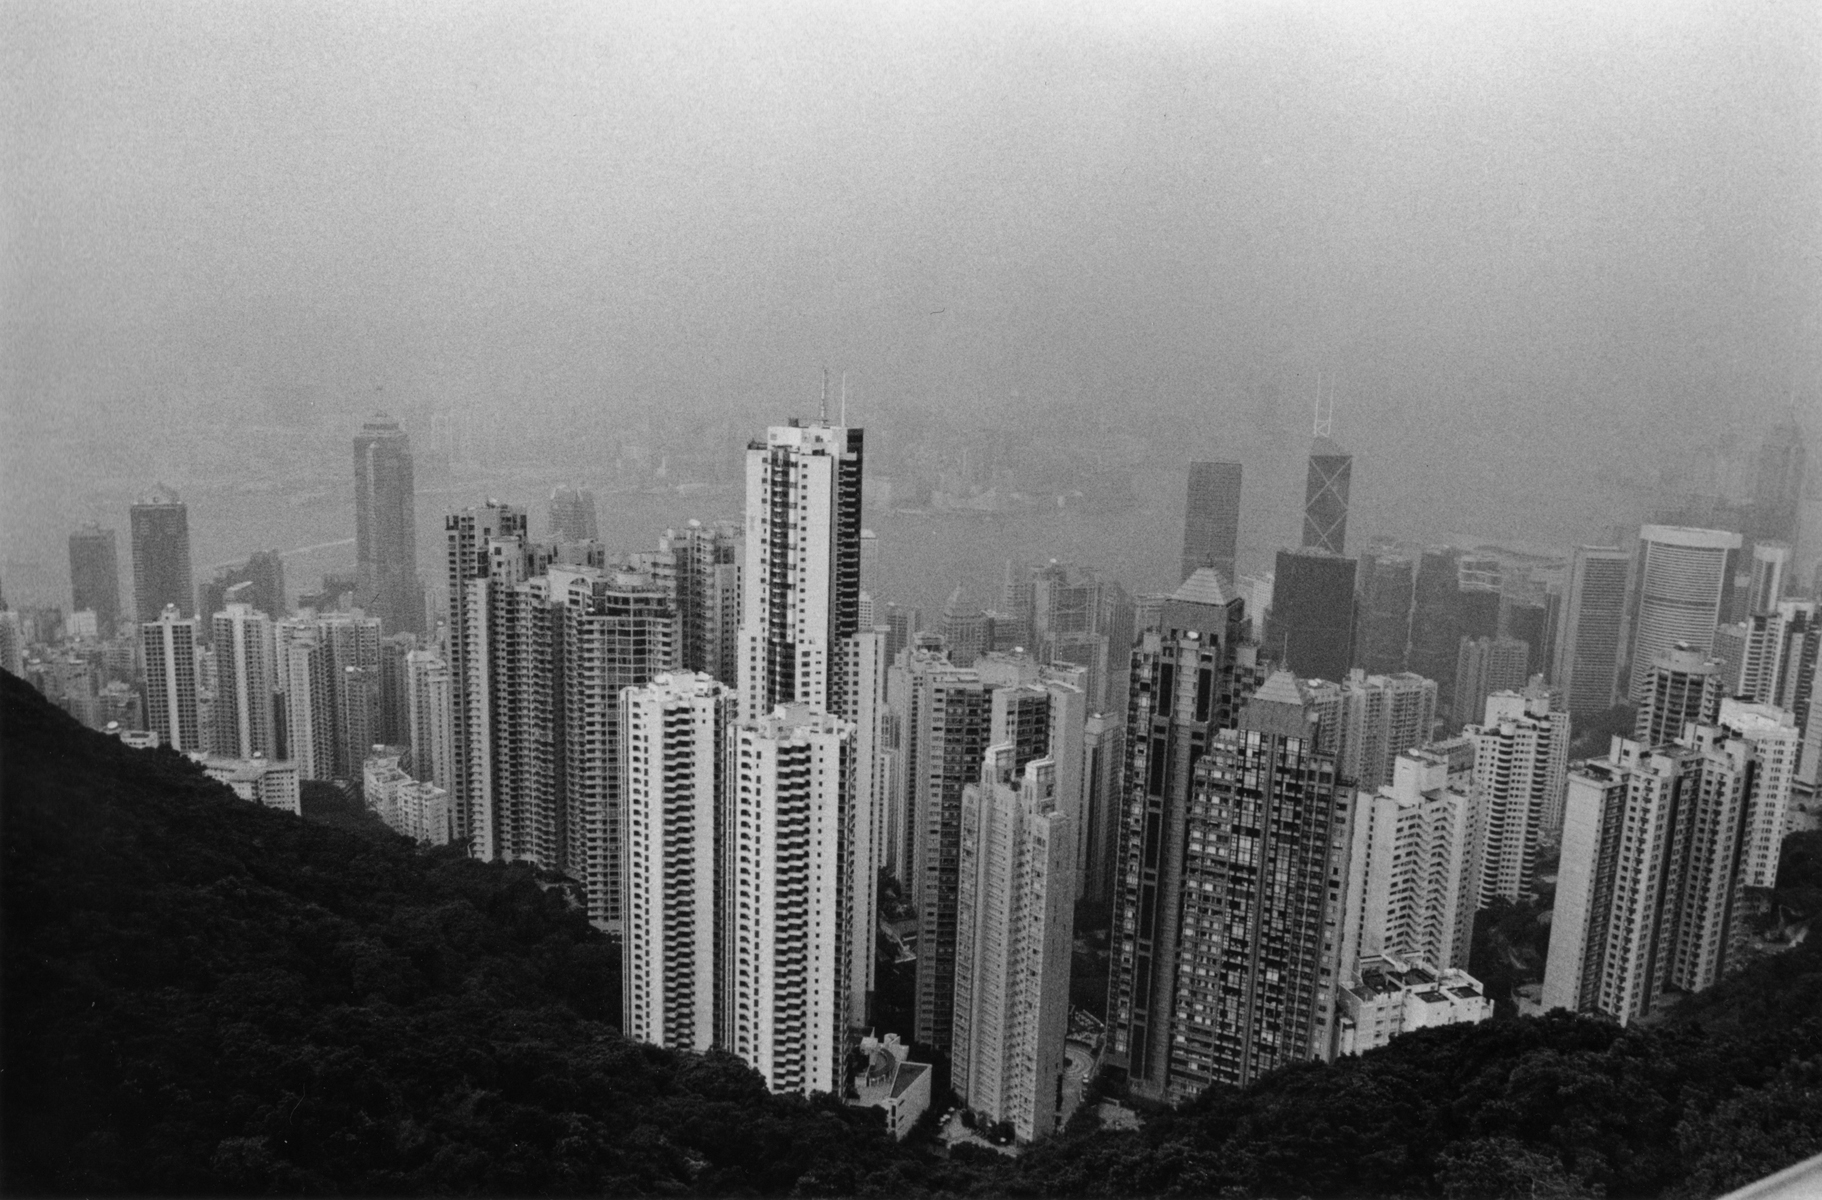 A view of Hong Kong's financial center on top of Victoria Peak. On bright, clear, sunny days The Peak offers panaramic views of Hong Kong, Kowloon, and Victoria harbour. Hong Kong Island